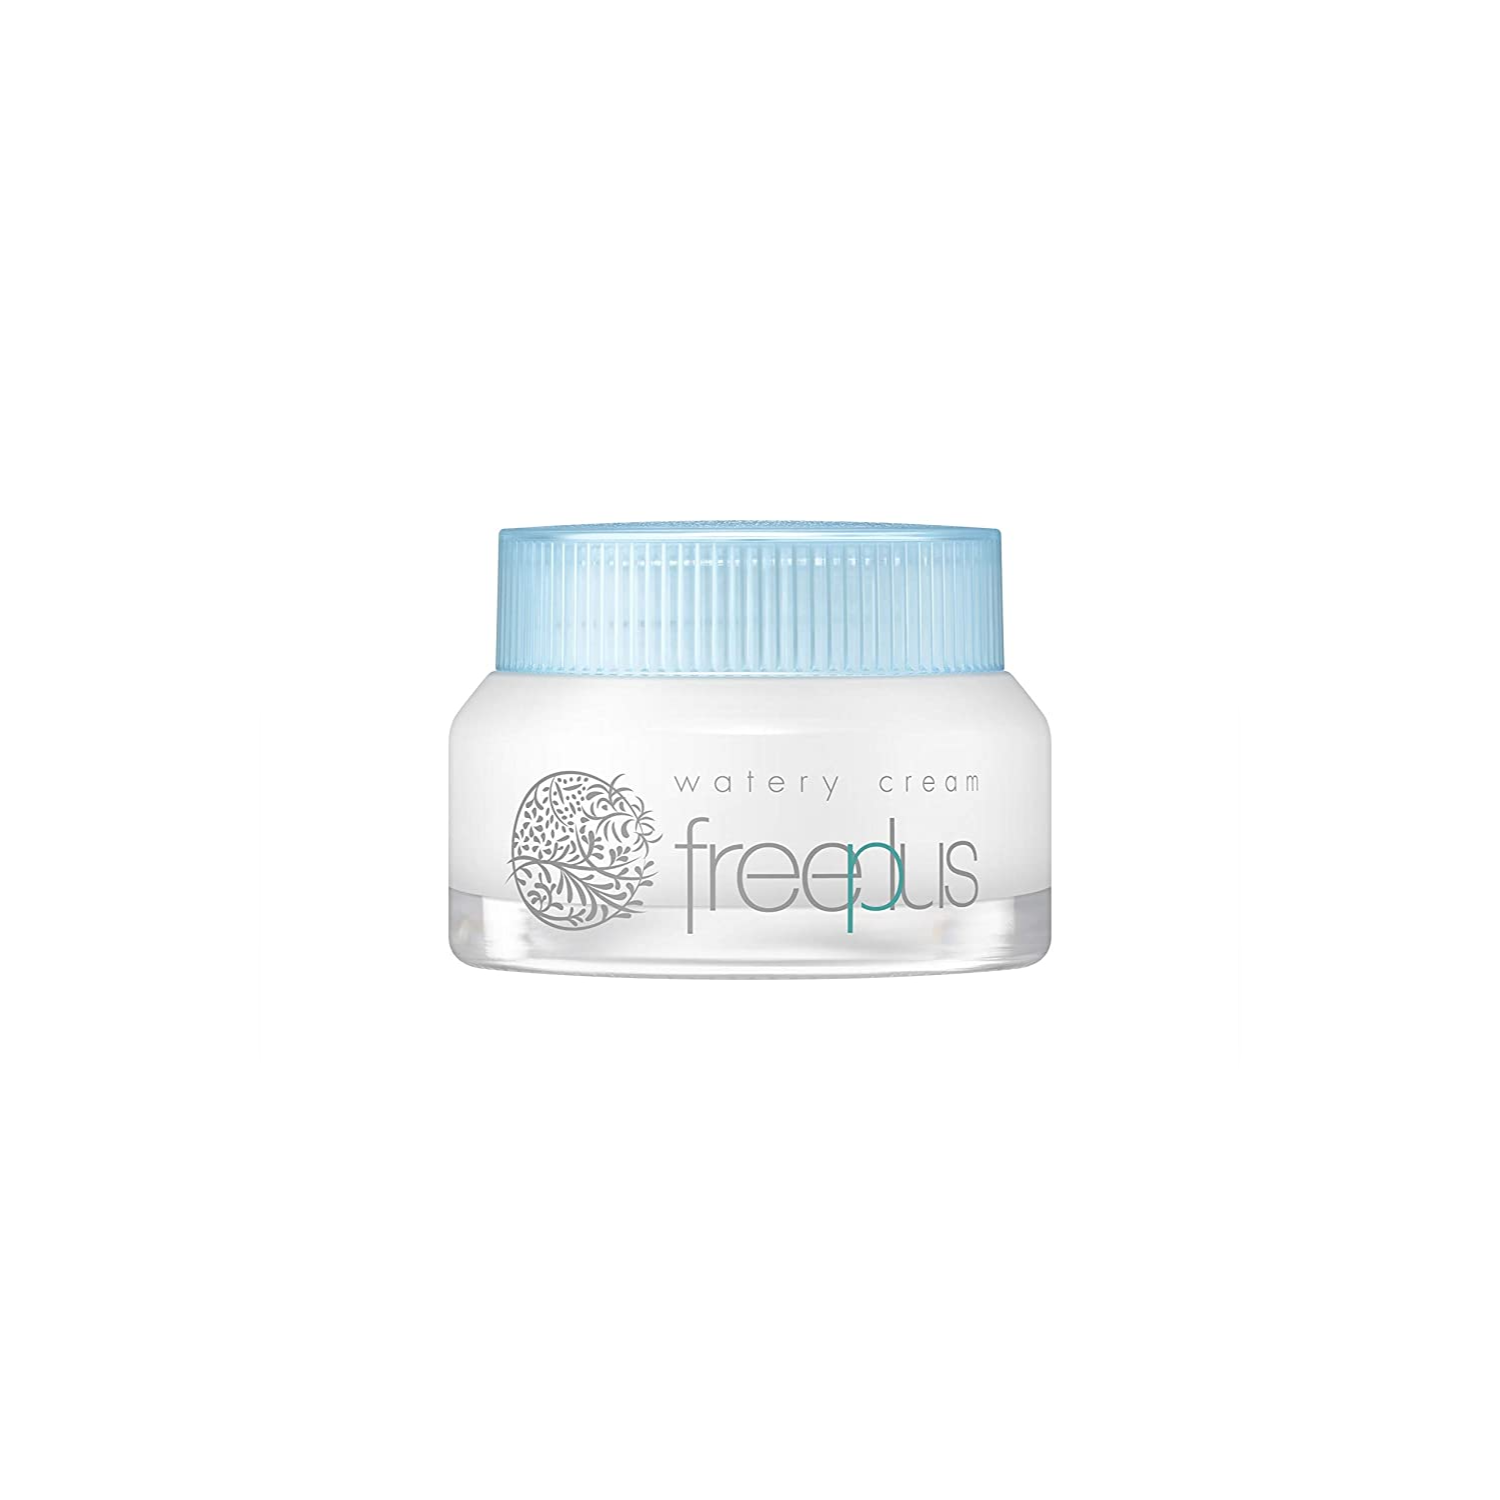 Kanebo Freeplus Watery Cream